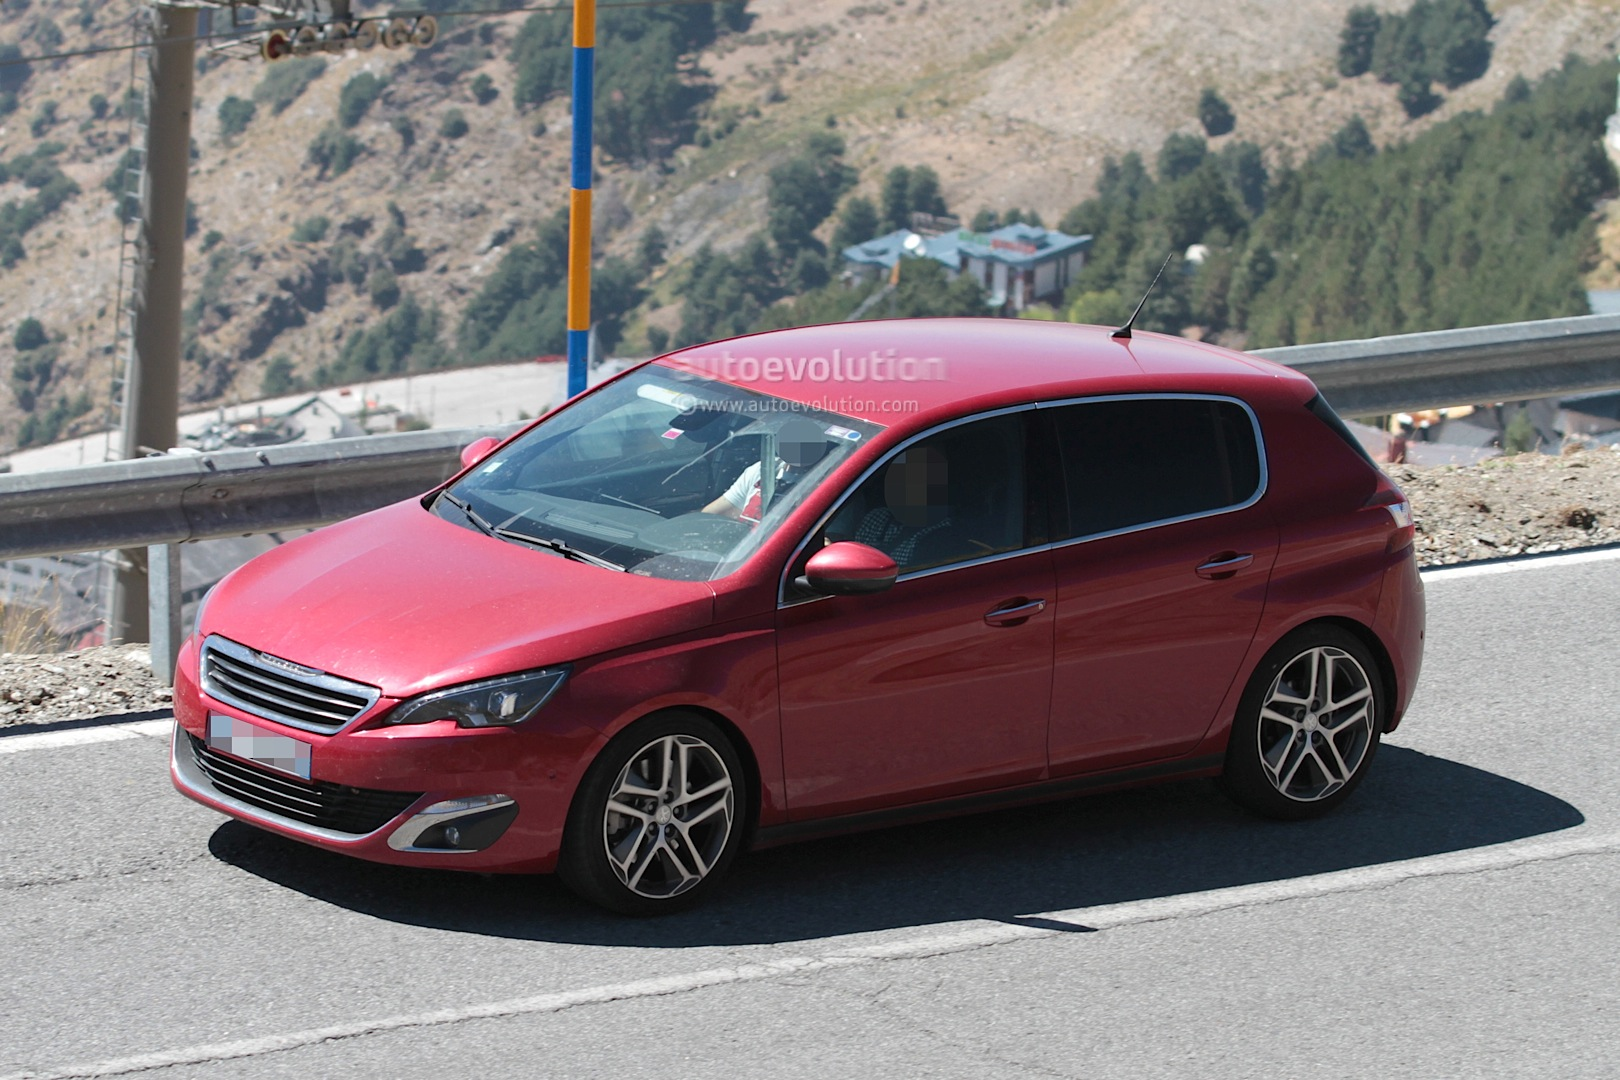 peugeot 308 gti spied testing ahead of debut autoevolution. Black Bedroom Furniture Sets. Home Design Ideas